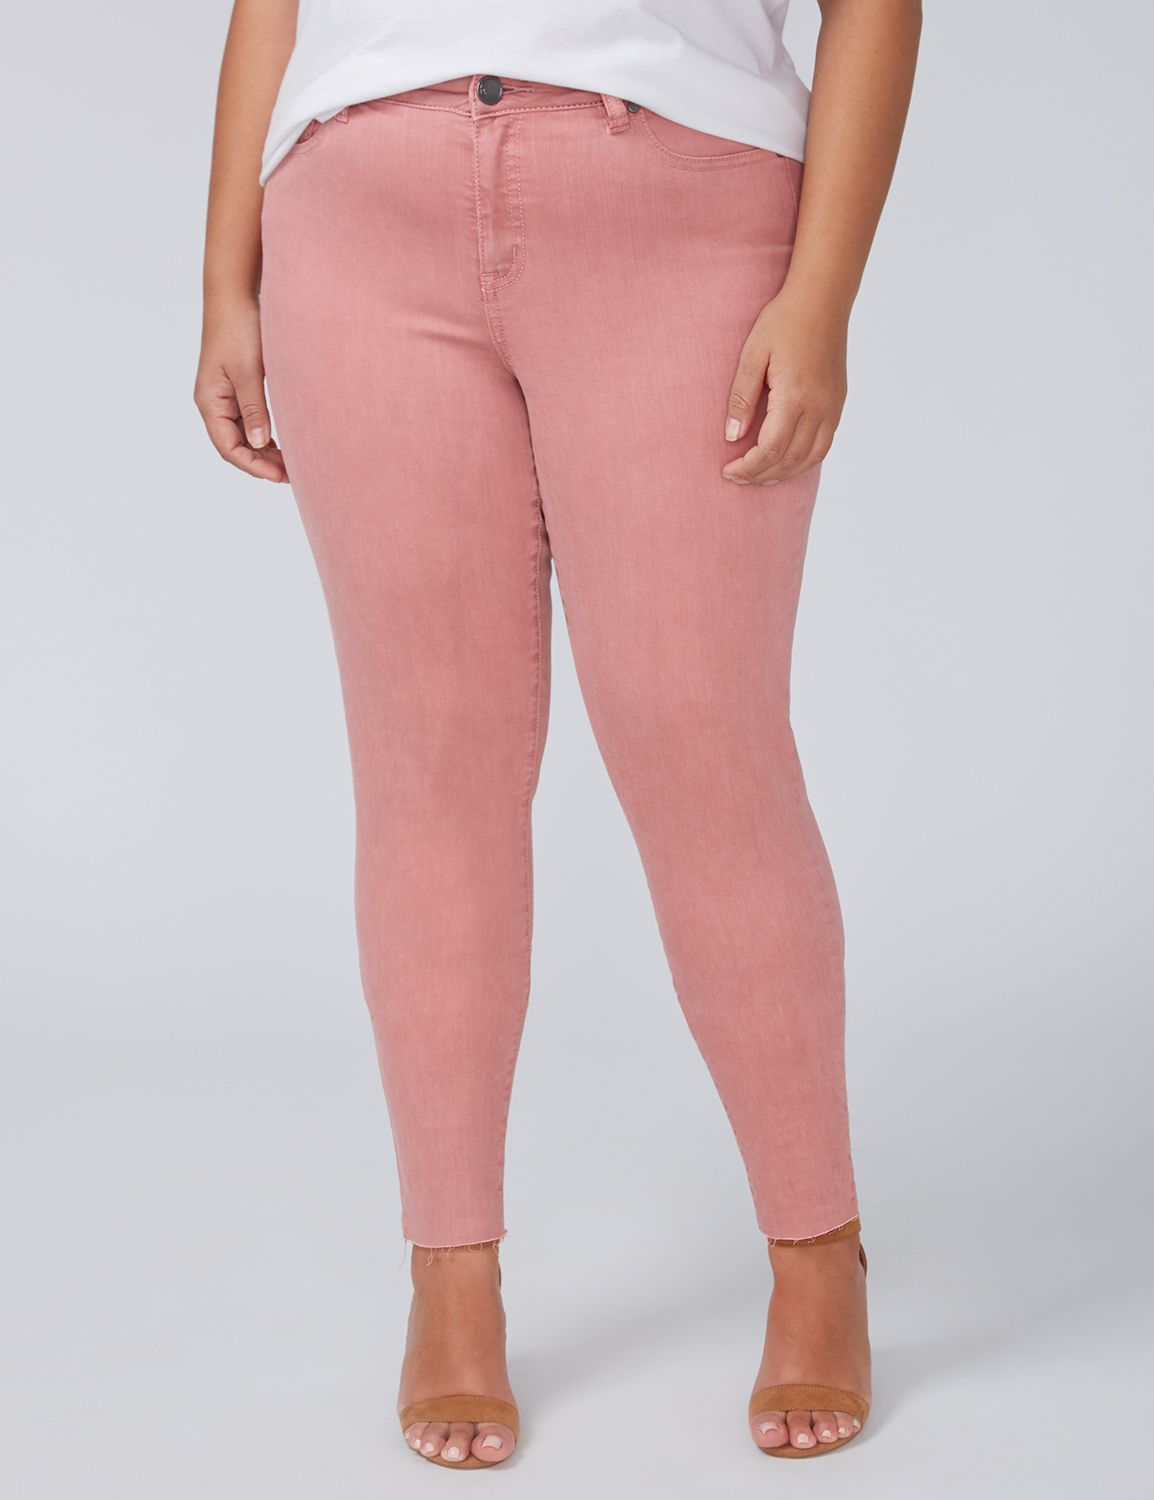 Petite Power Pockets Super Stretch Skinny Ankle Jean - Rose